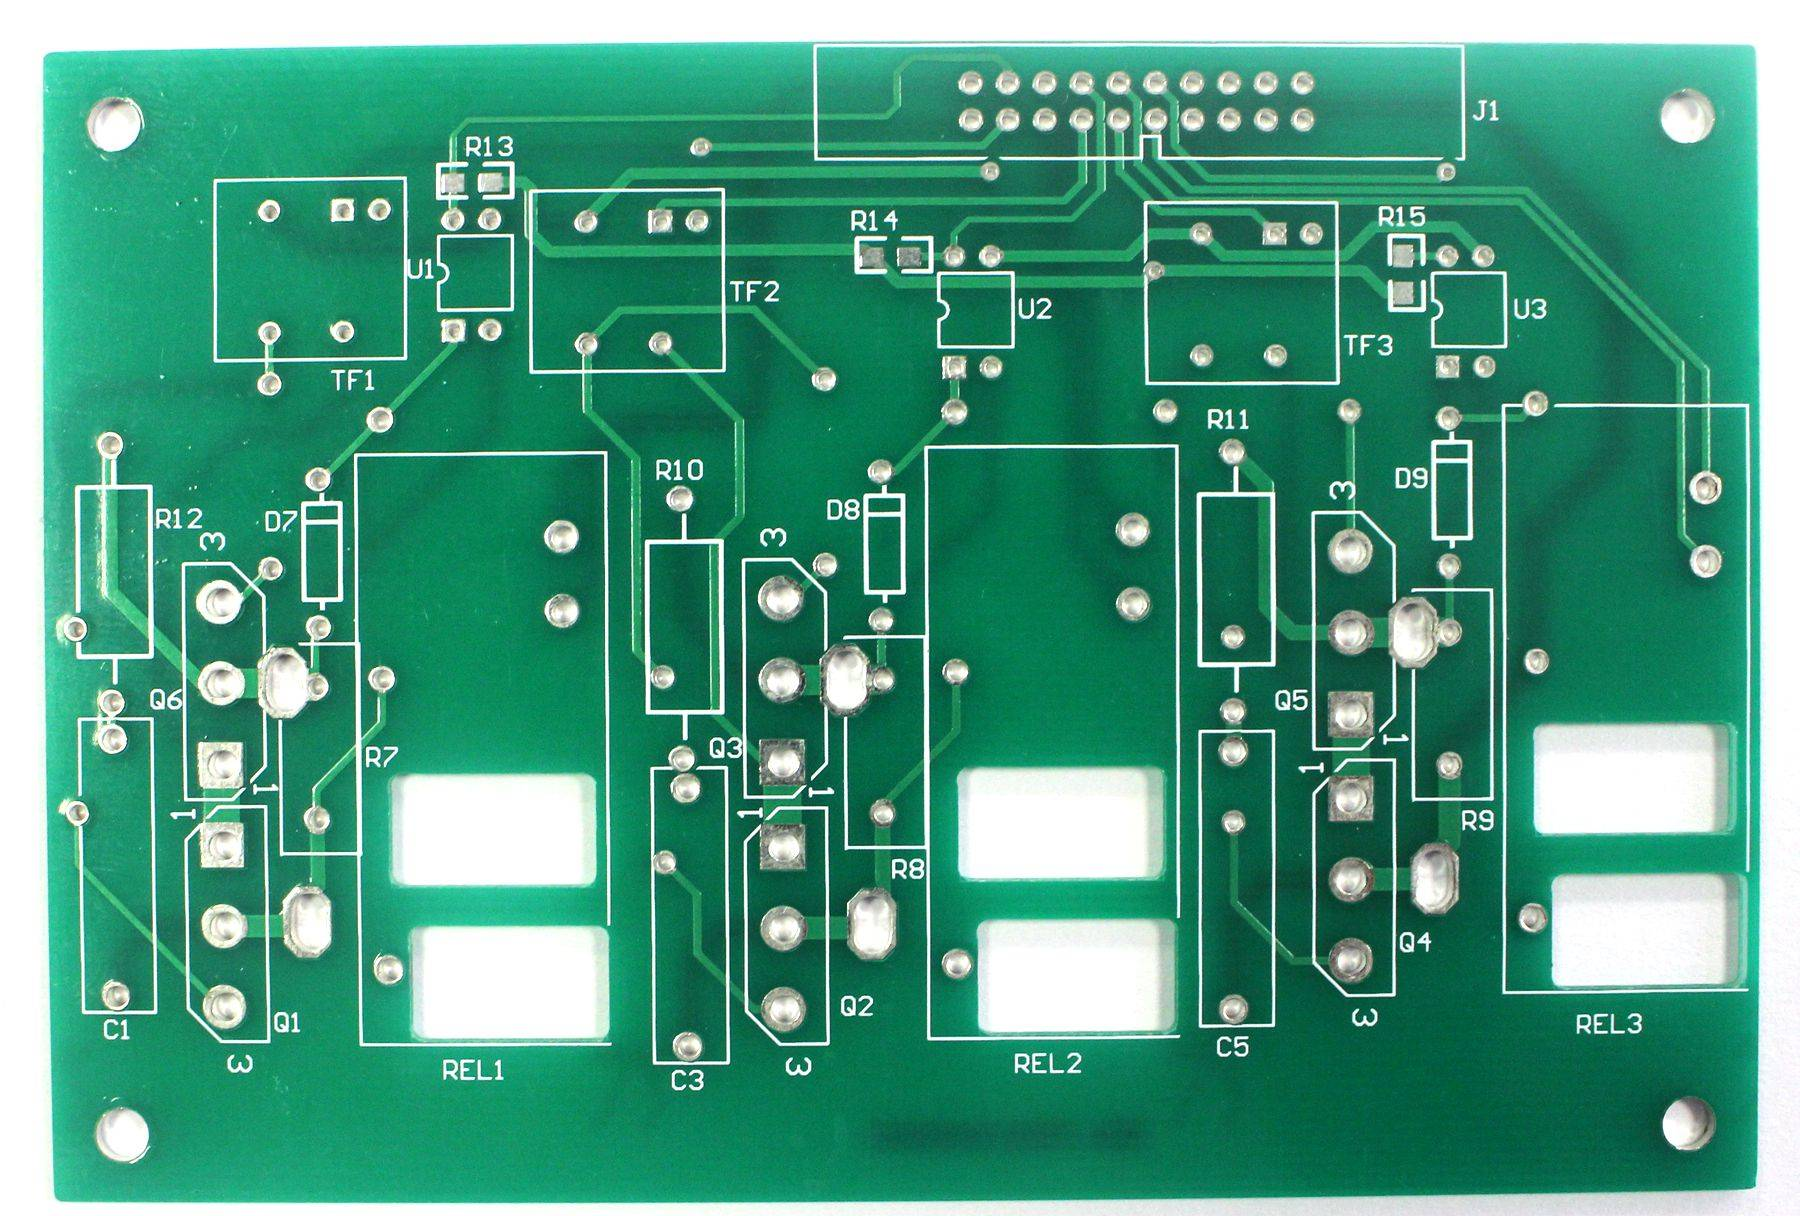 6 layer immersion tin PCB with 1.0 thickness